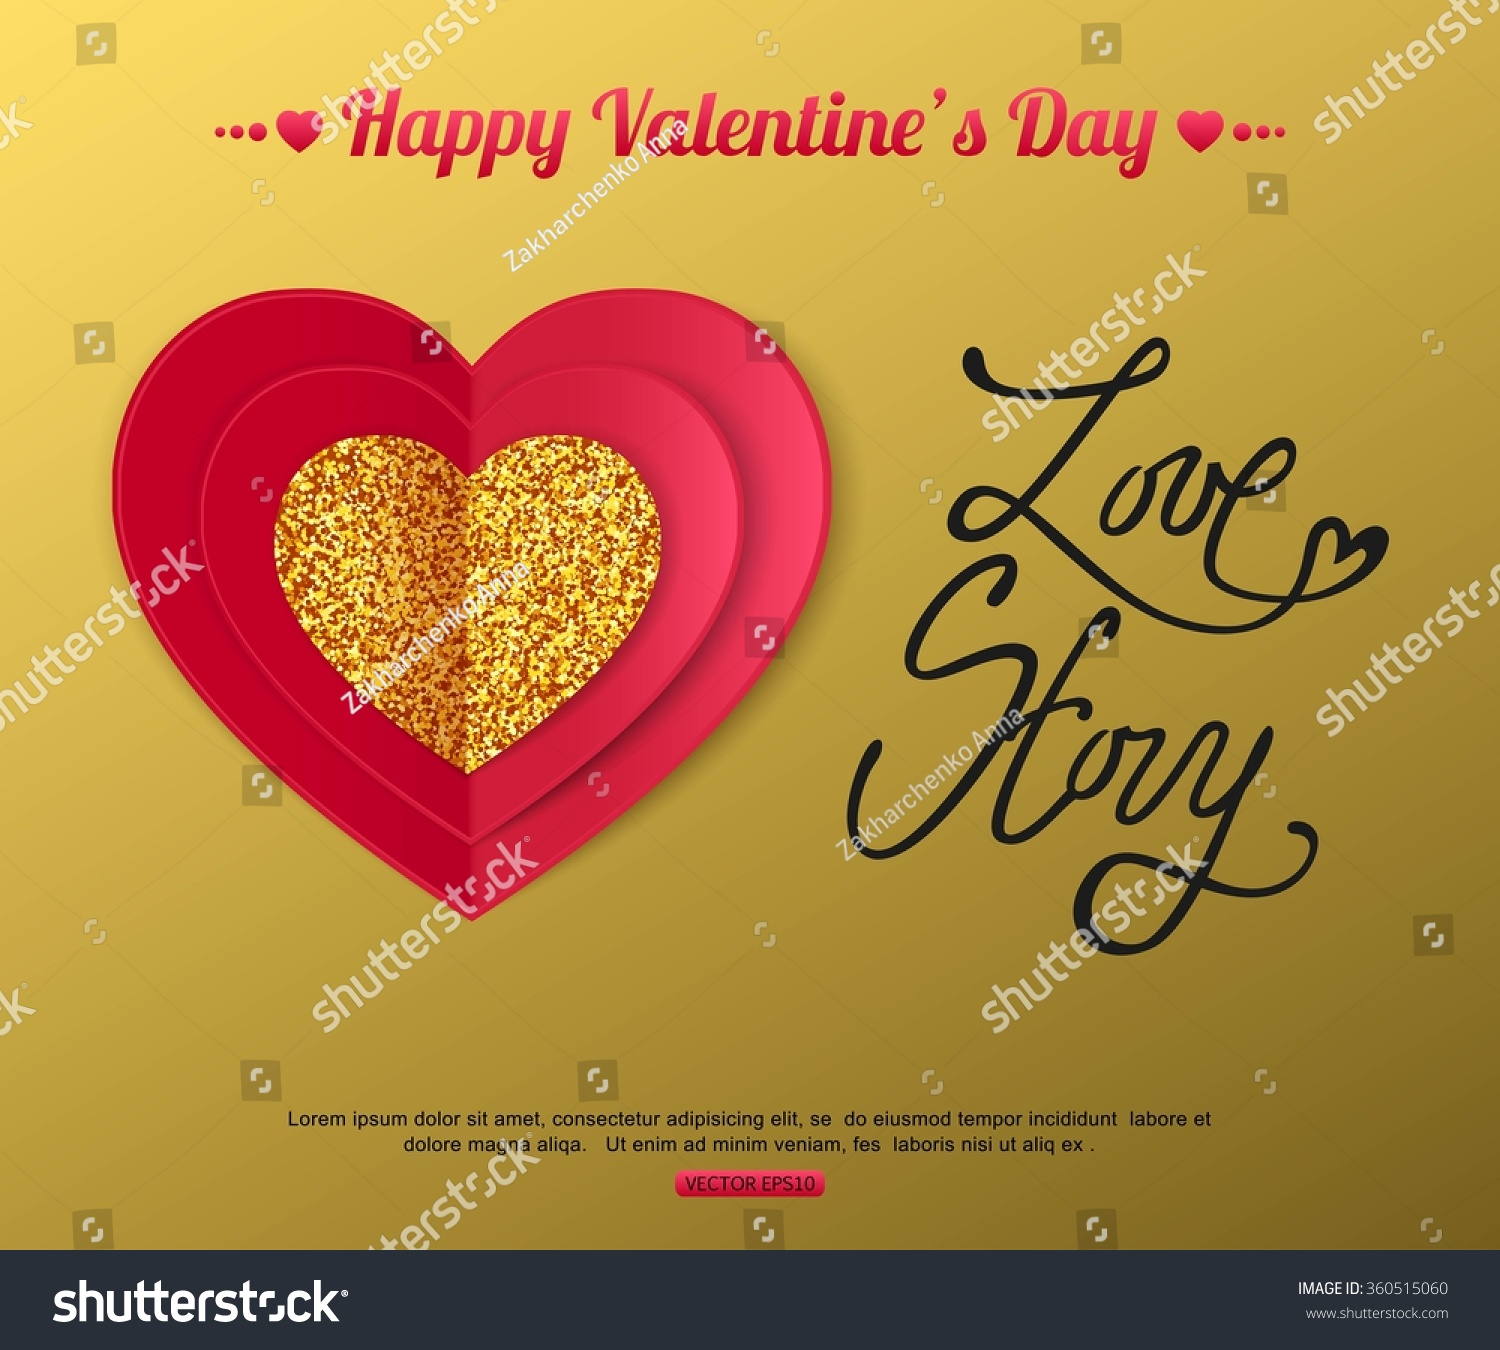 """THE VALENTINE RUSH EP 2 """"THE VALENTINE CRAZE!"""" …FROM TONIA AND SAM'S STORY."""